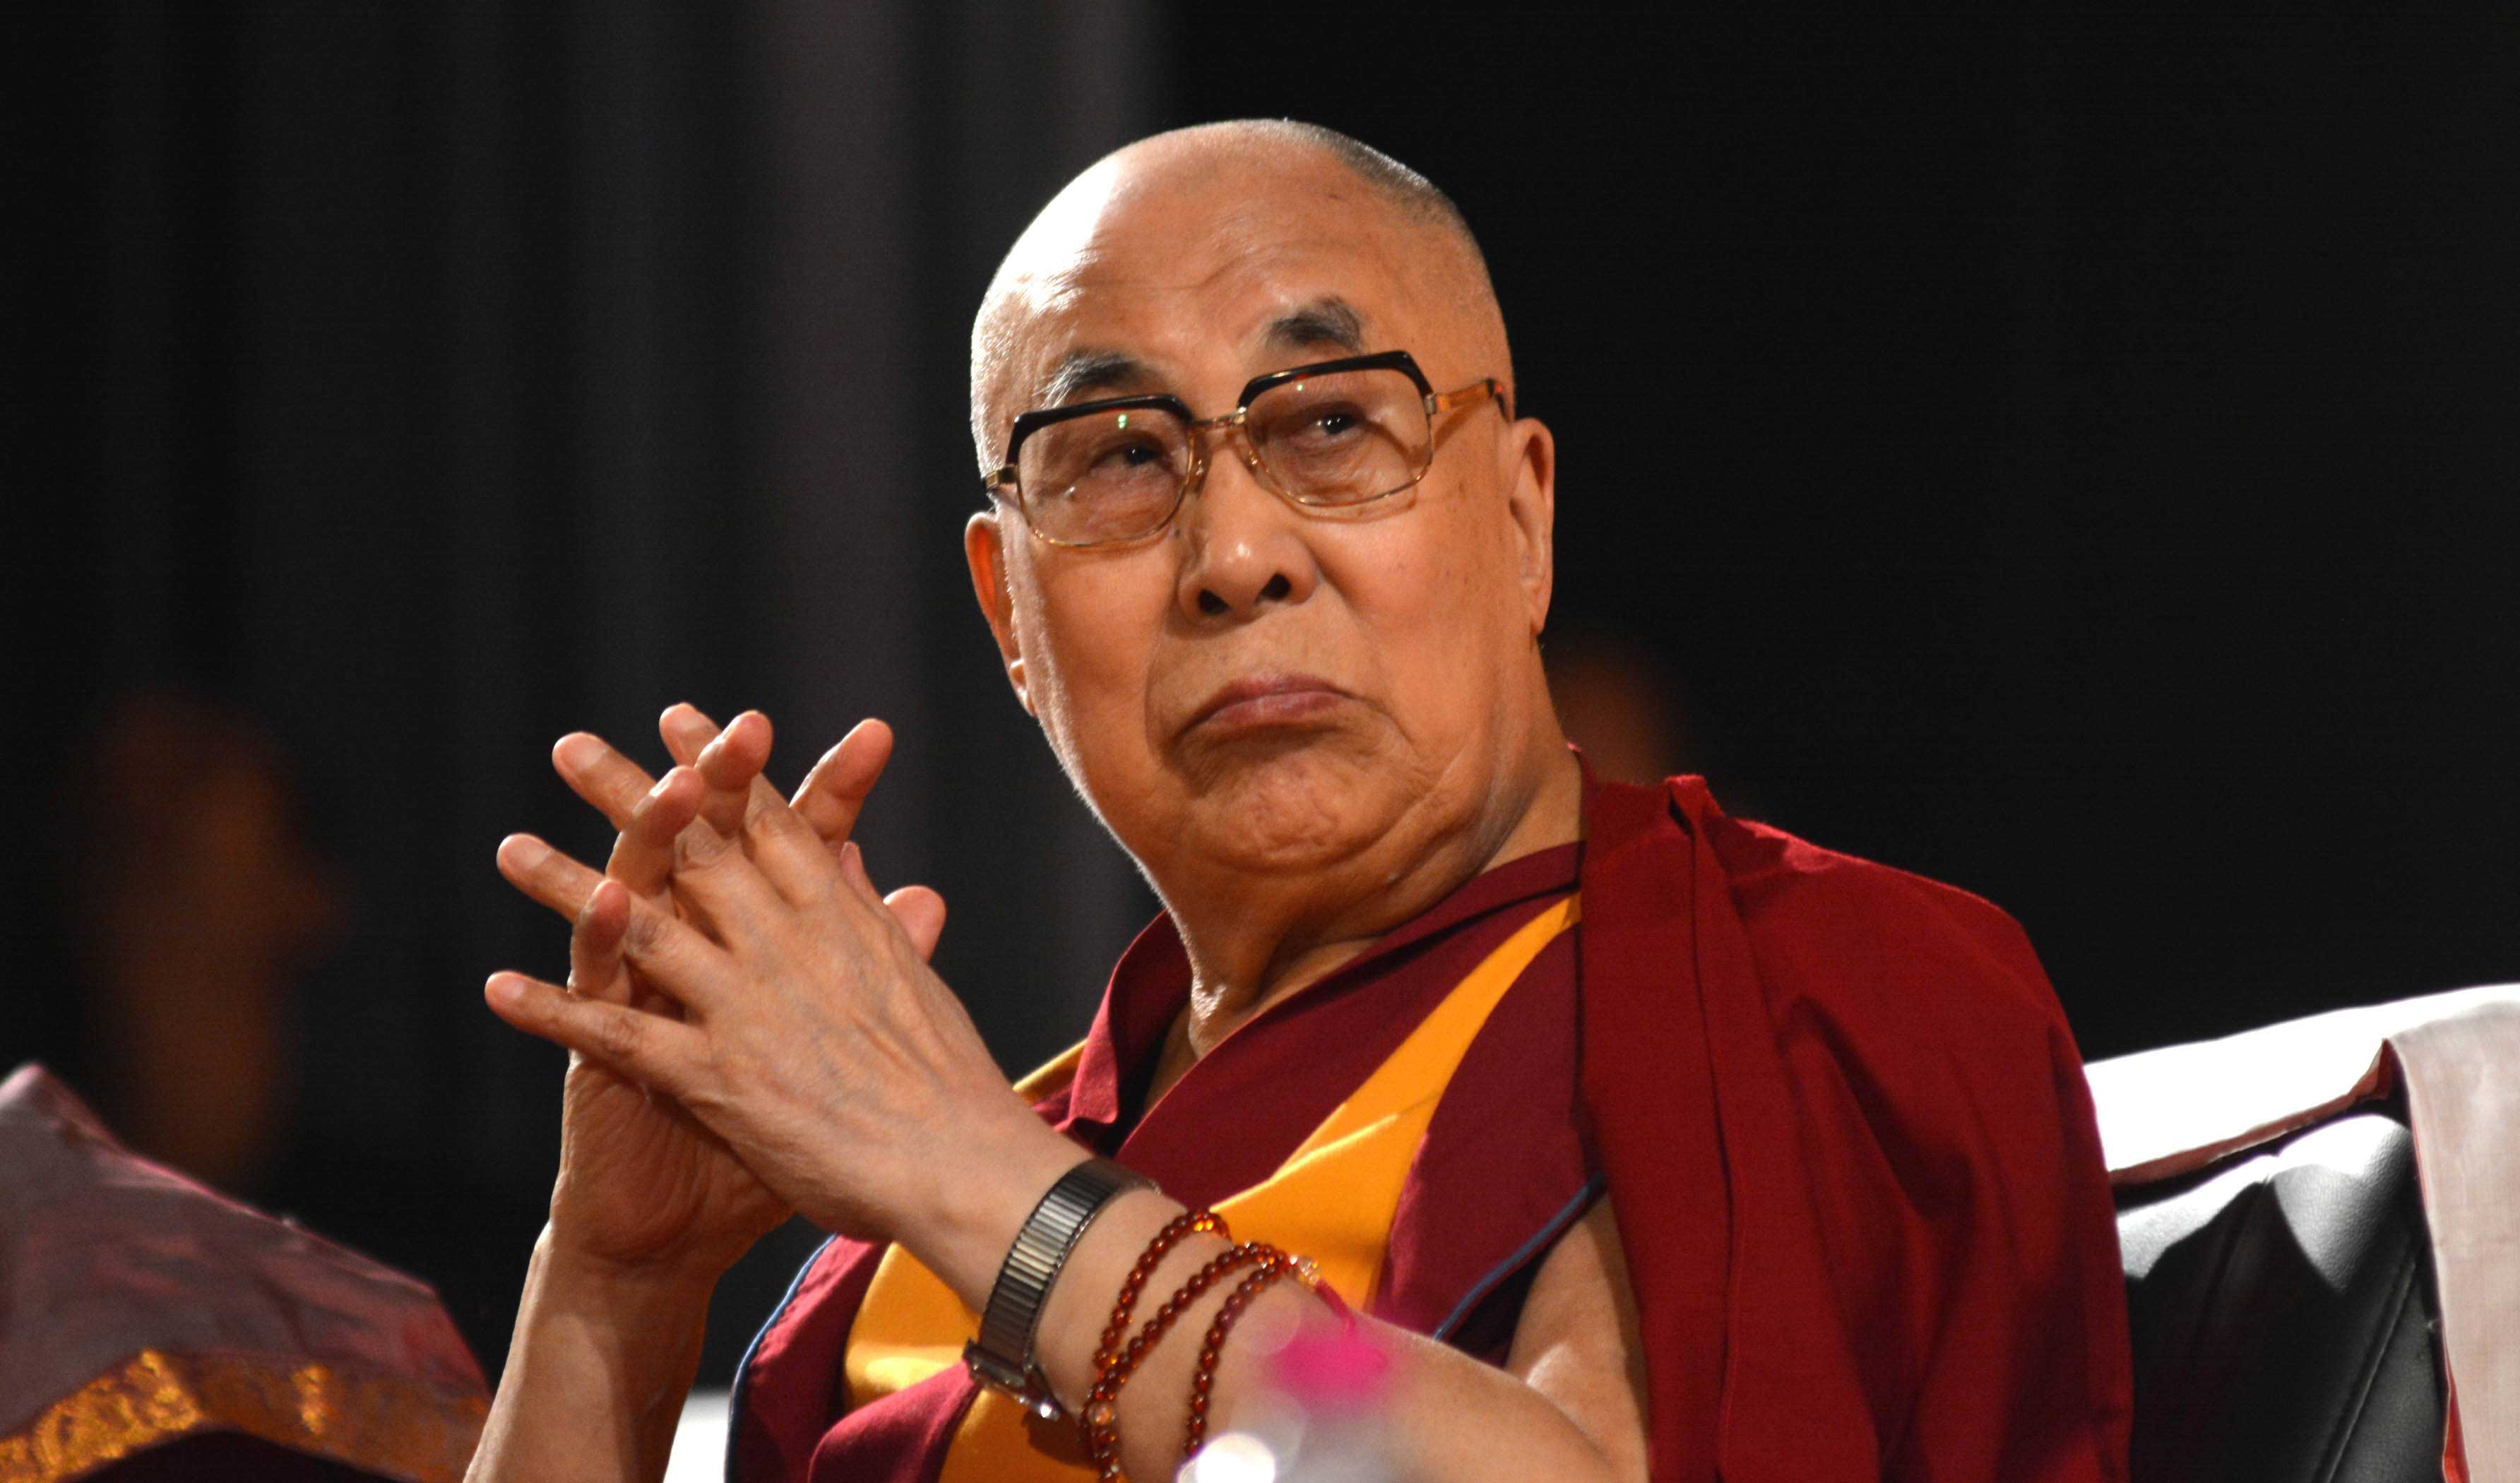 The Dalai Lama, 78, is in Bodhgaya for a retreat since December 16 and will remain there till January 8.